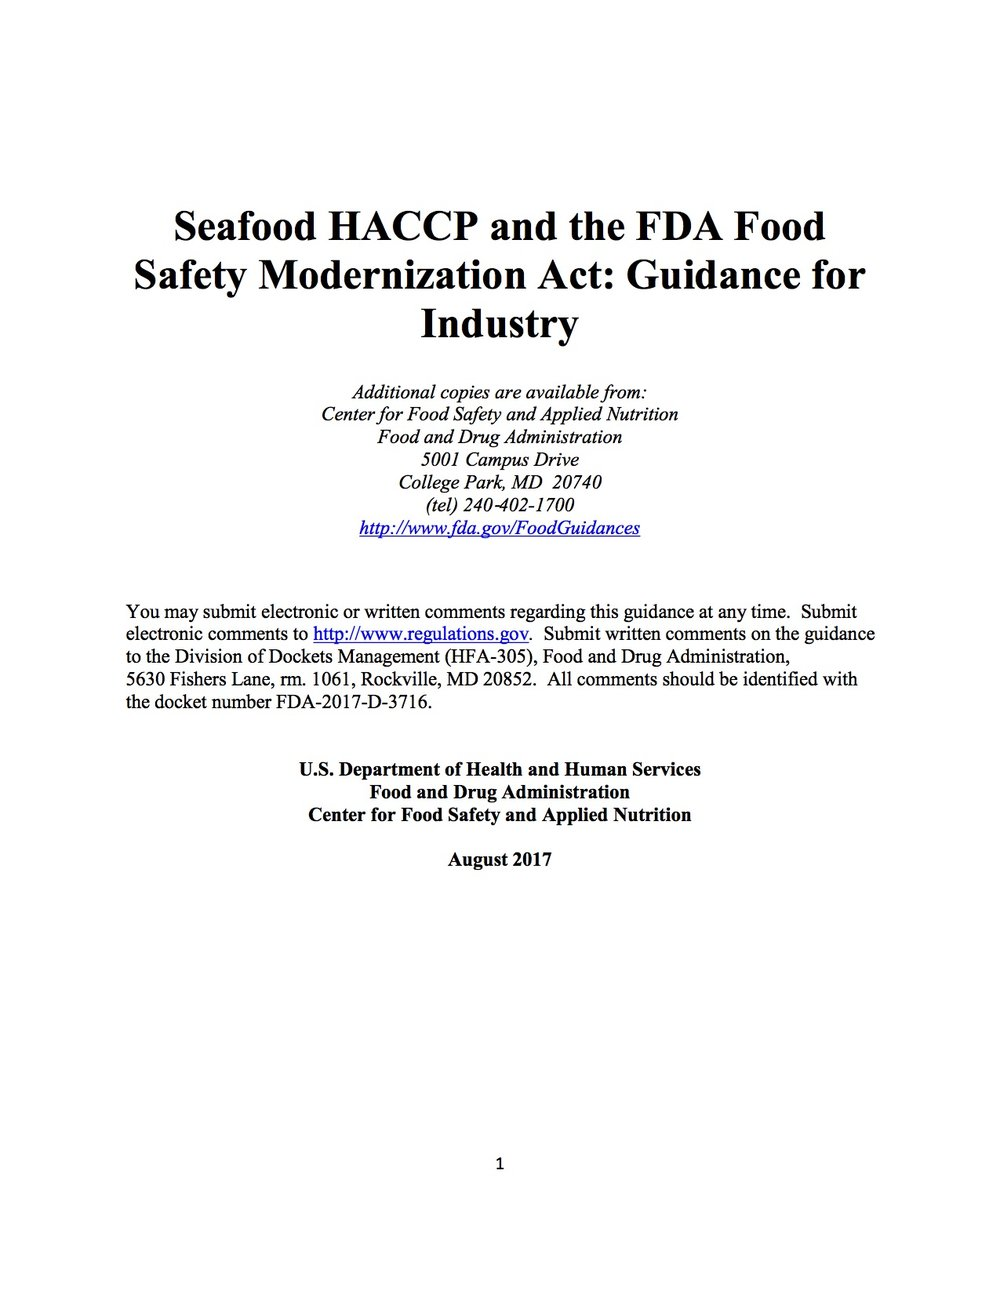 thumbnail-seafood-haccp-and-the-fda-food-safety-modernization-act-guidance.jpg